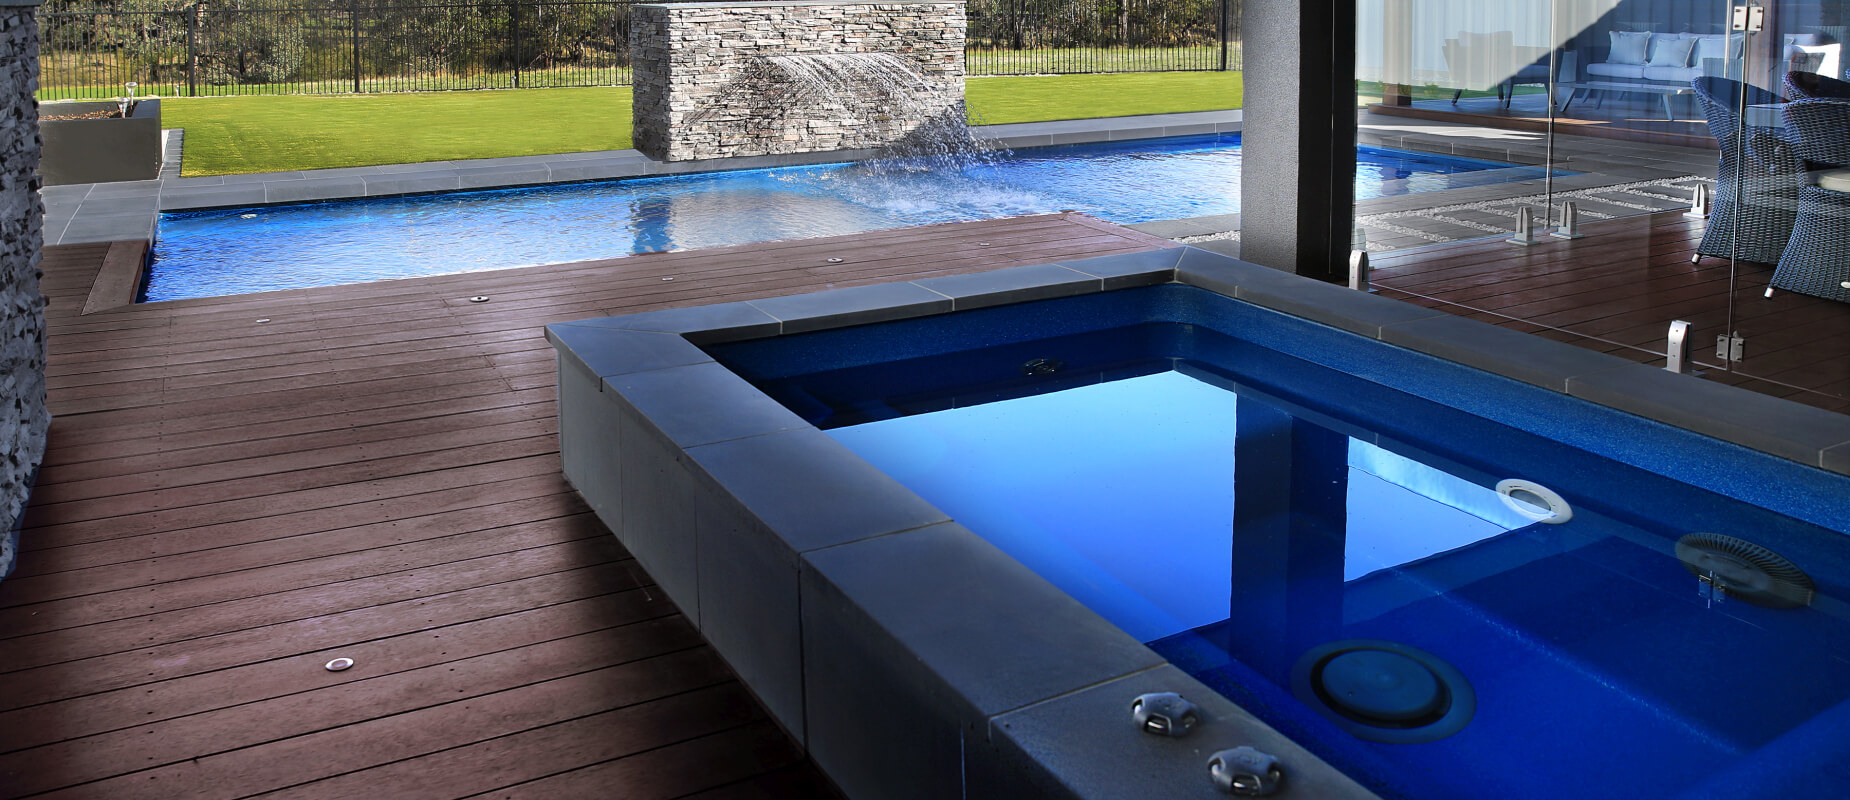 Fibreglass spa pool with a self standing spa